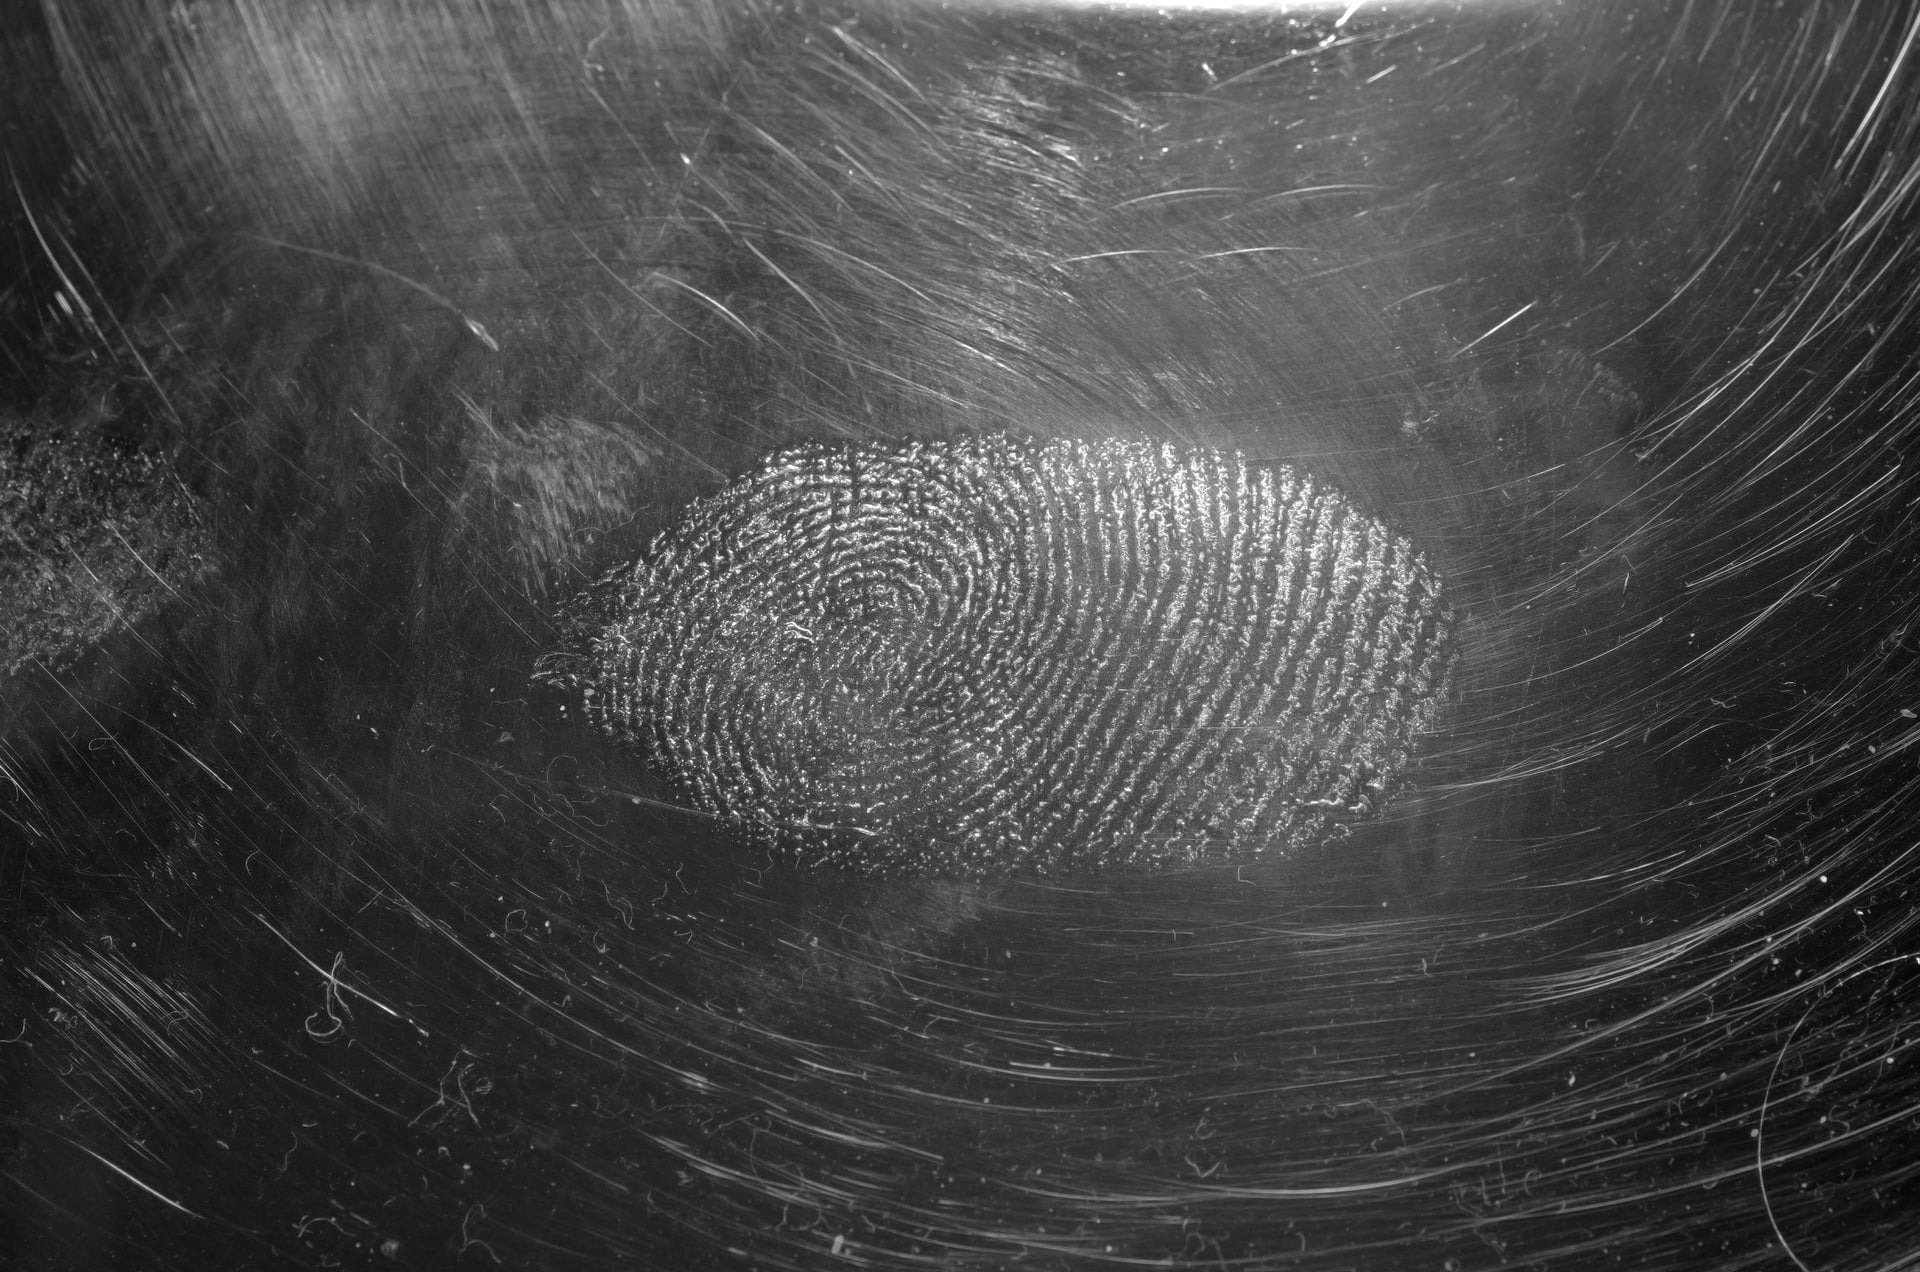 A close-up picture of a white fingerprint, possibly covered in dust to capture it